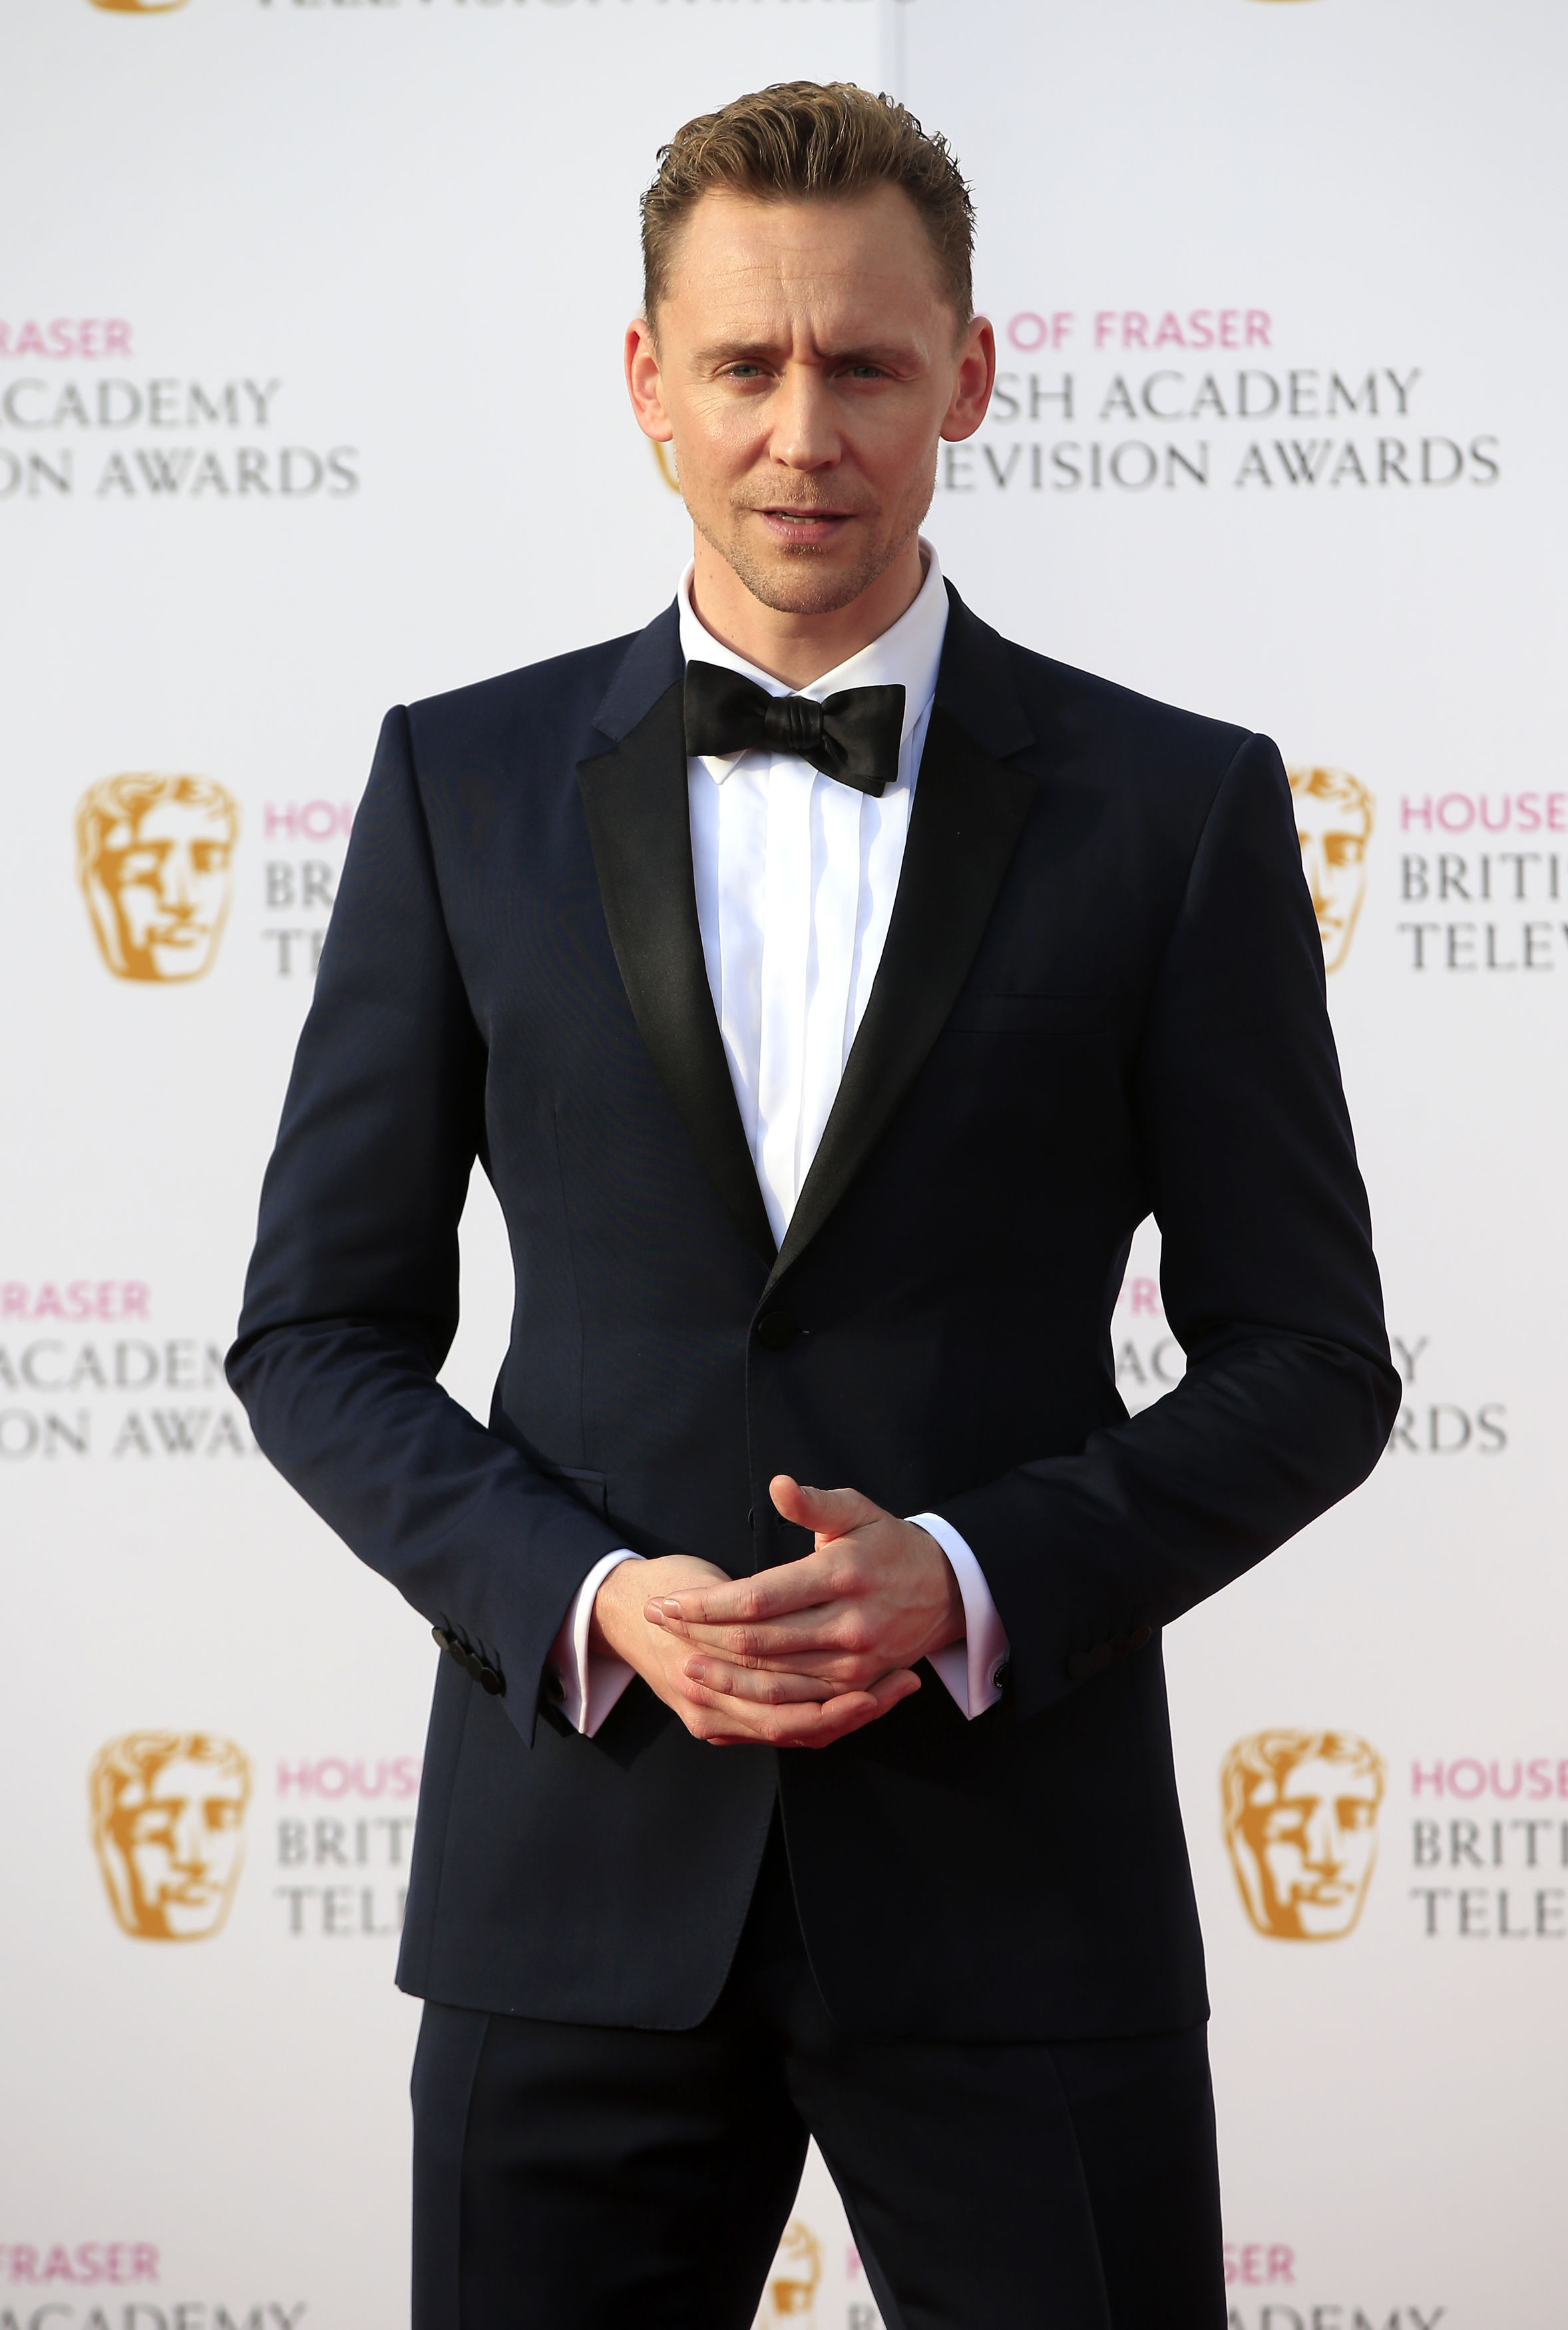 Tom Hiddleston's acceptance speech for his Best Actor gong in the TV Choice Awards was hijacked by his Thor co-stars Chris Hemsworth and Idris Elba (file photo)